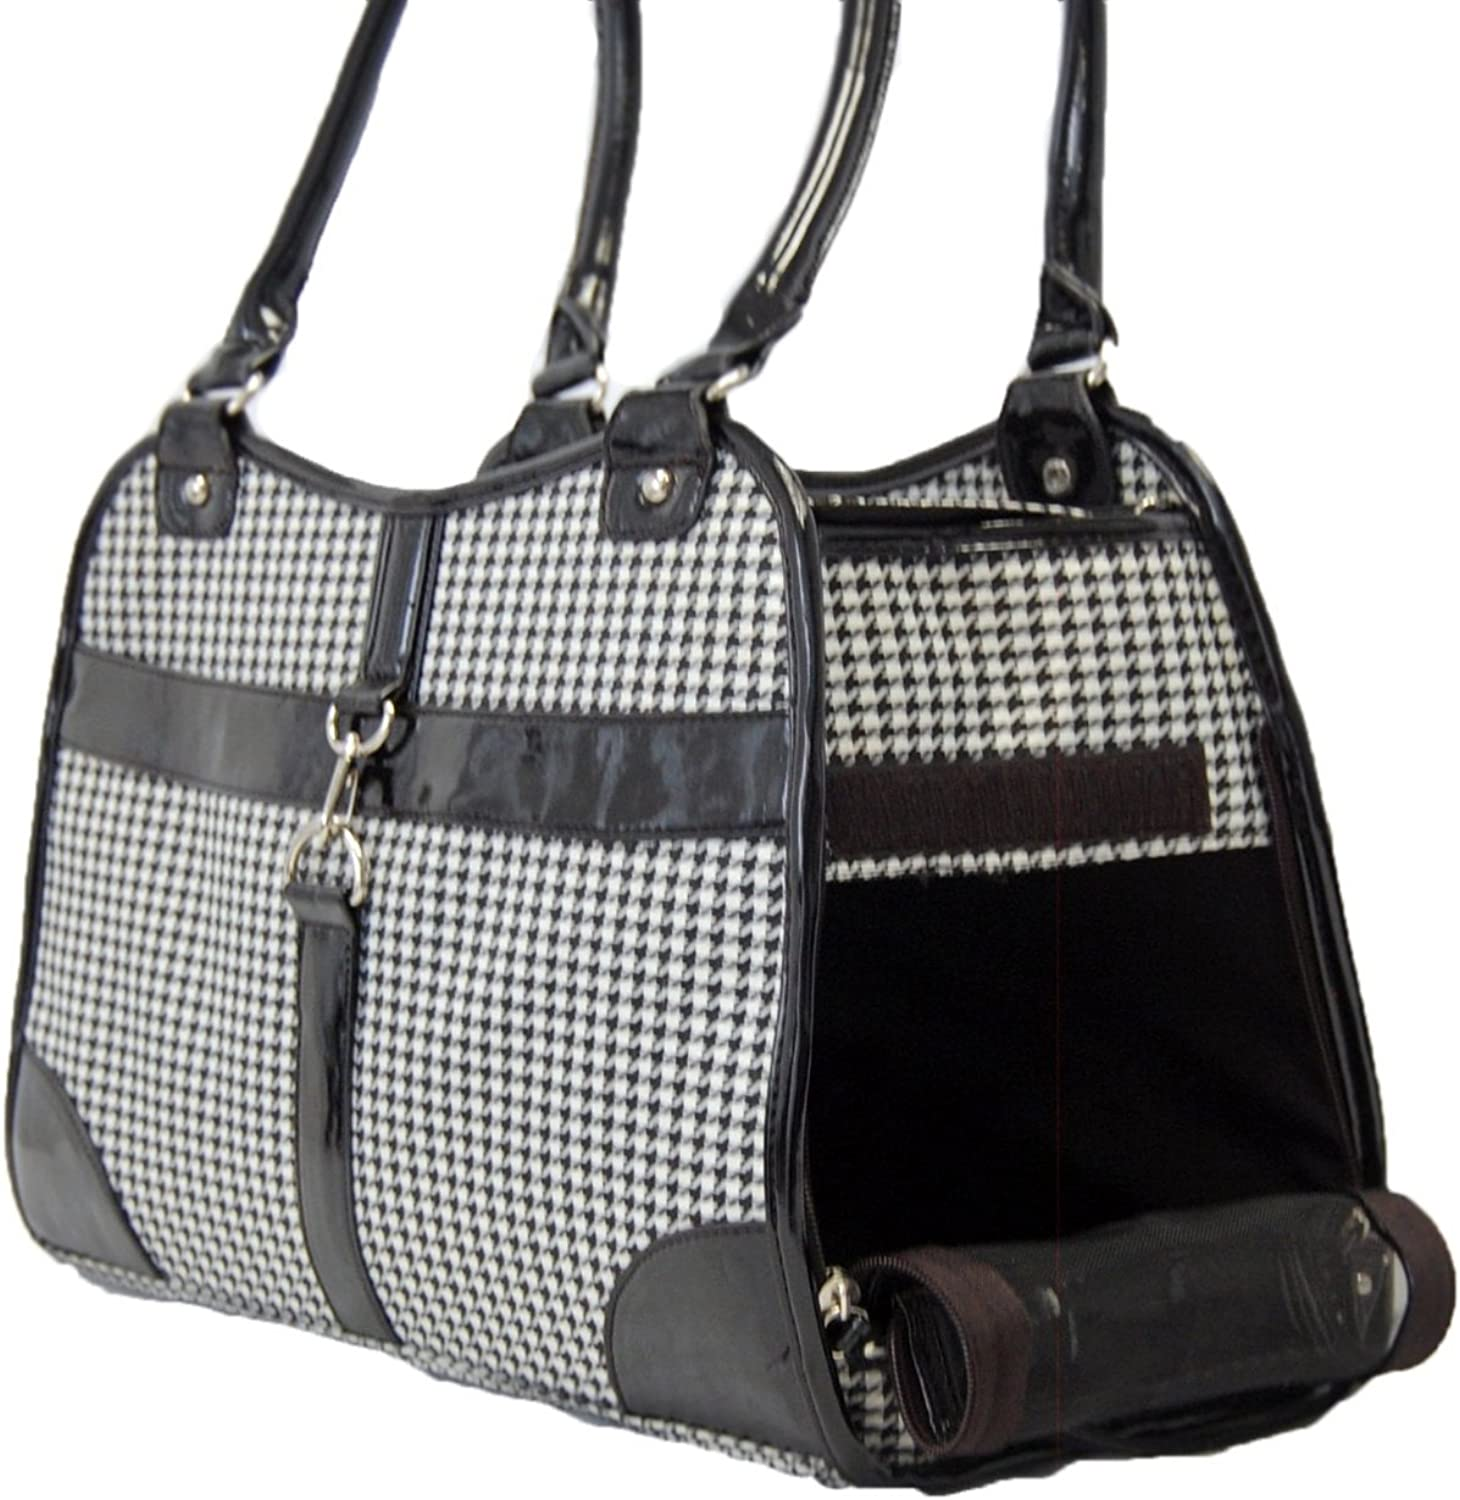 Houndstooth Print Tote Pet Dog Cat Carrier Tote Purse Travel Airline Bag BlackMedium by mpet